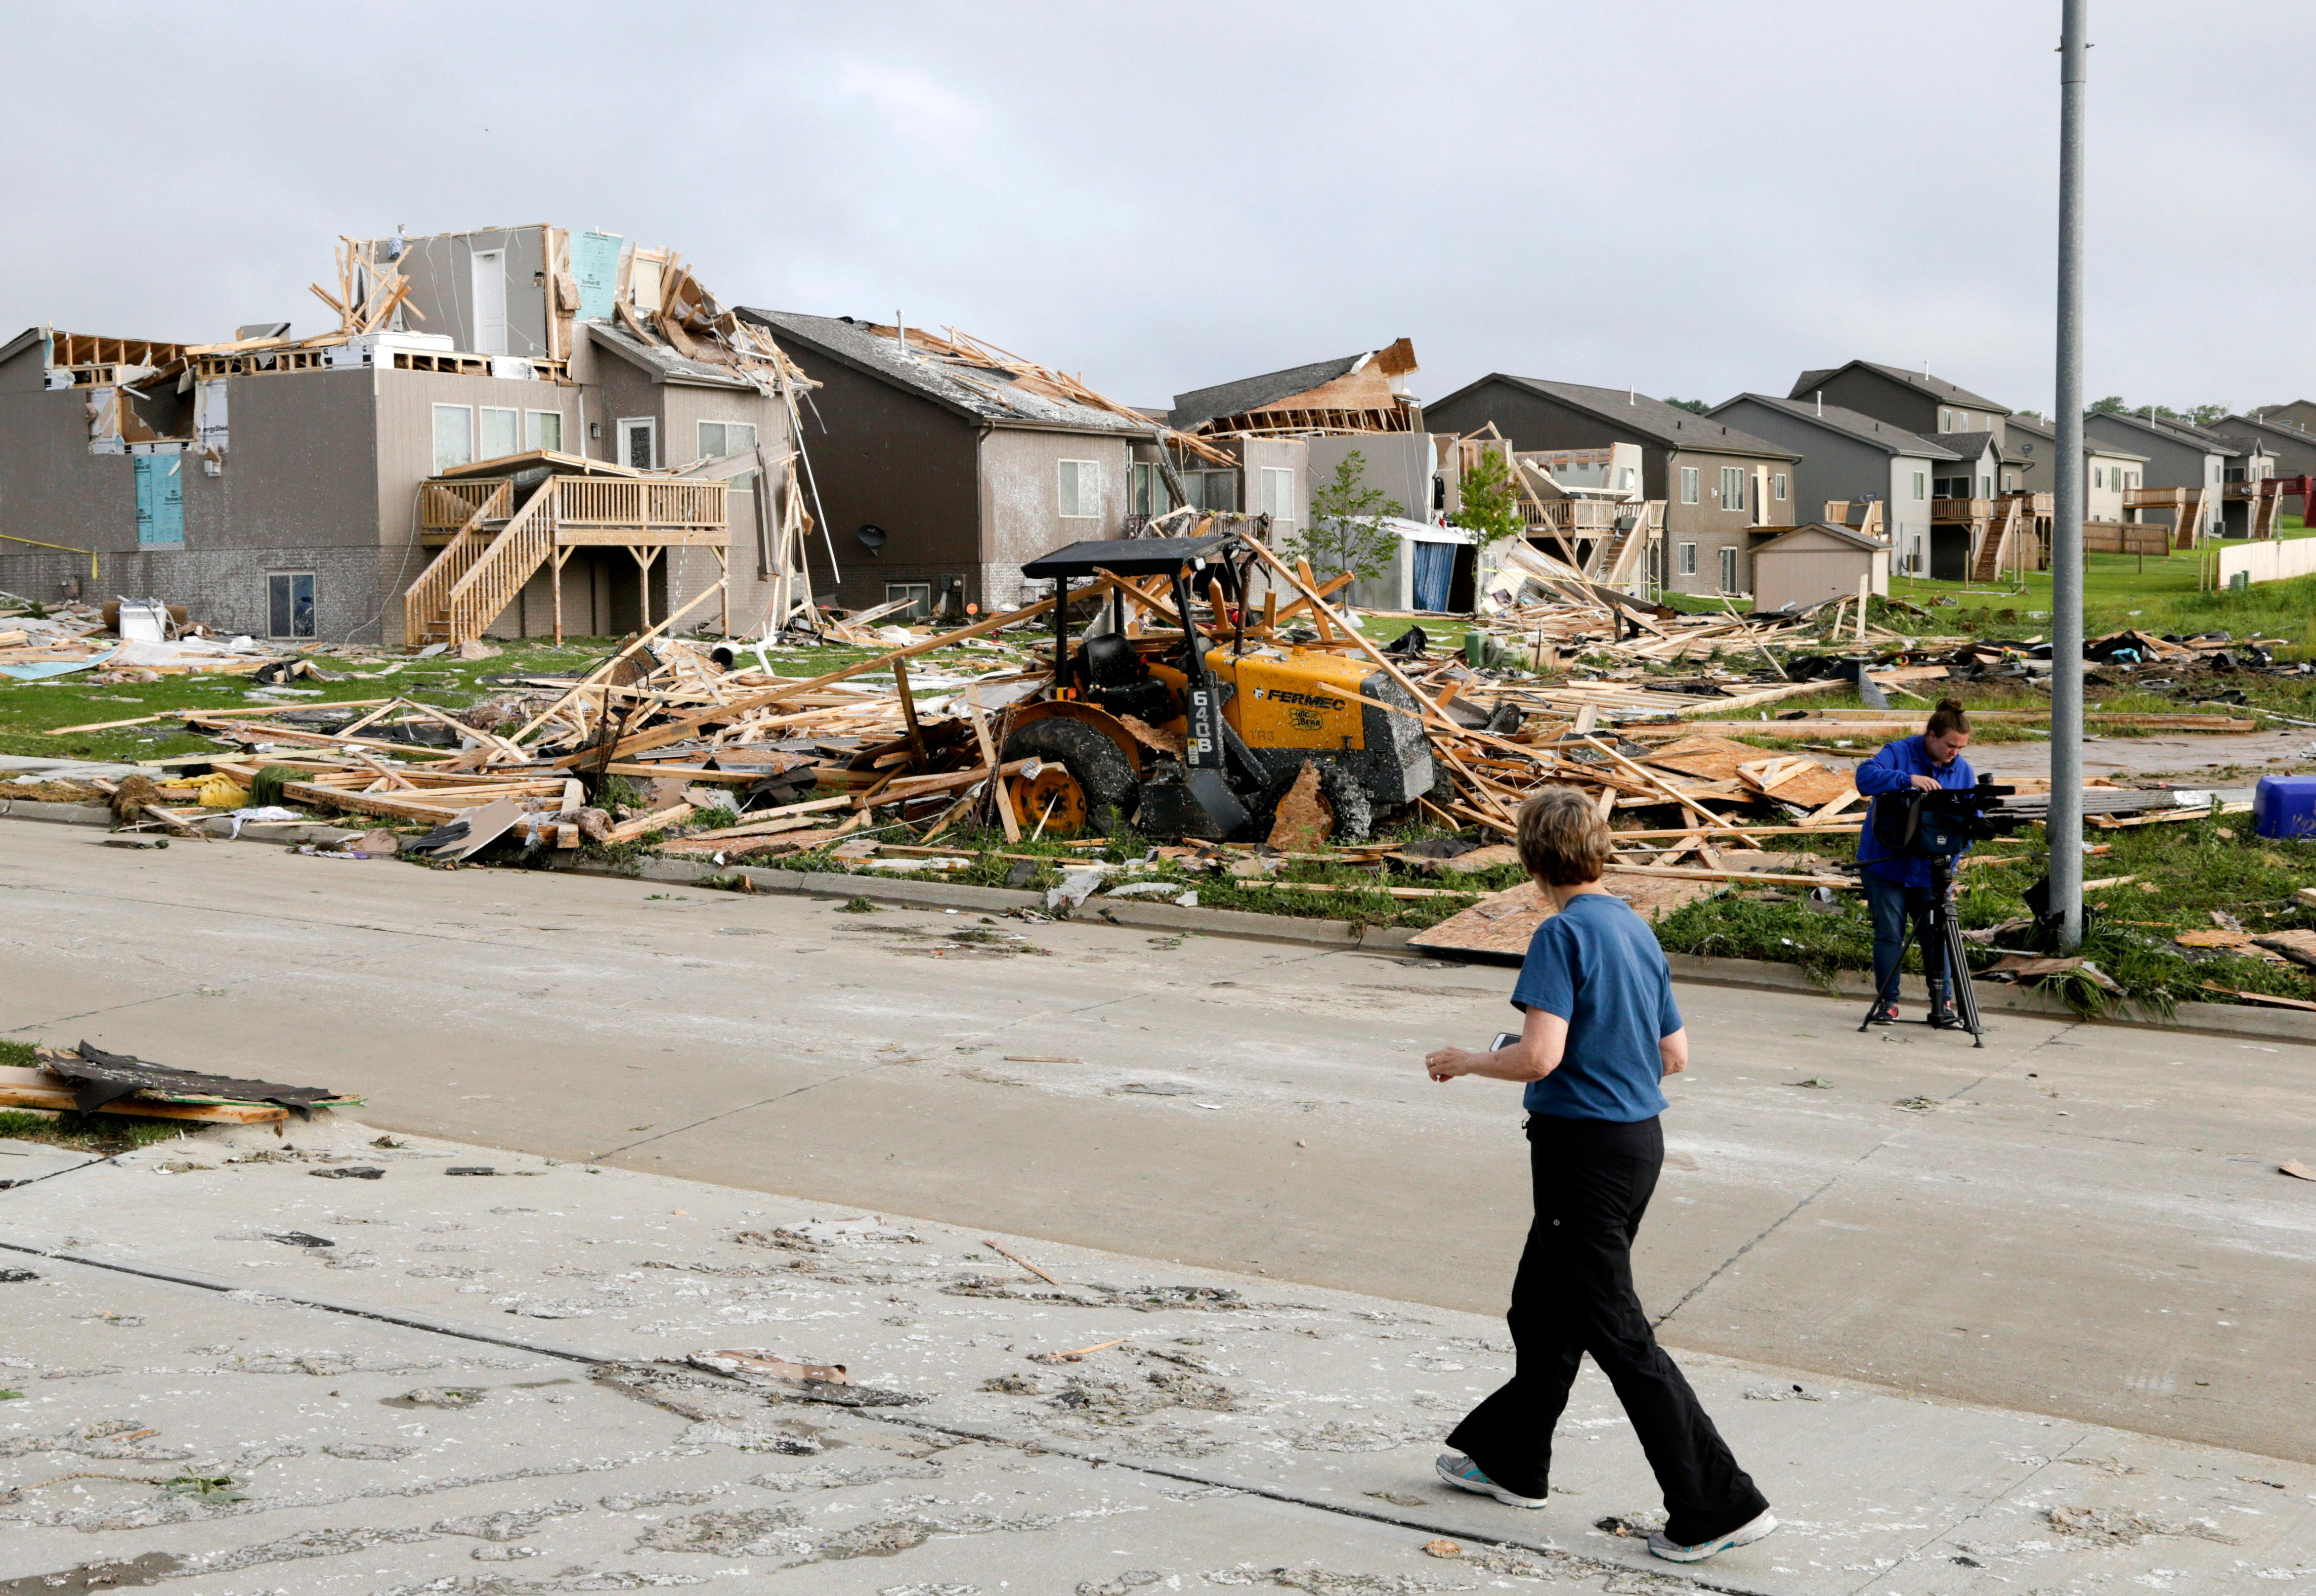 A neighbor walks past damaged homes in the Hyda Hills neighborhood in Bellevue, Neb., Saturday, June 17, 2017. A severe weather front passed through the area the previous evening. (AP Photo/Nati Harnik)